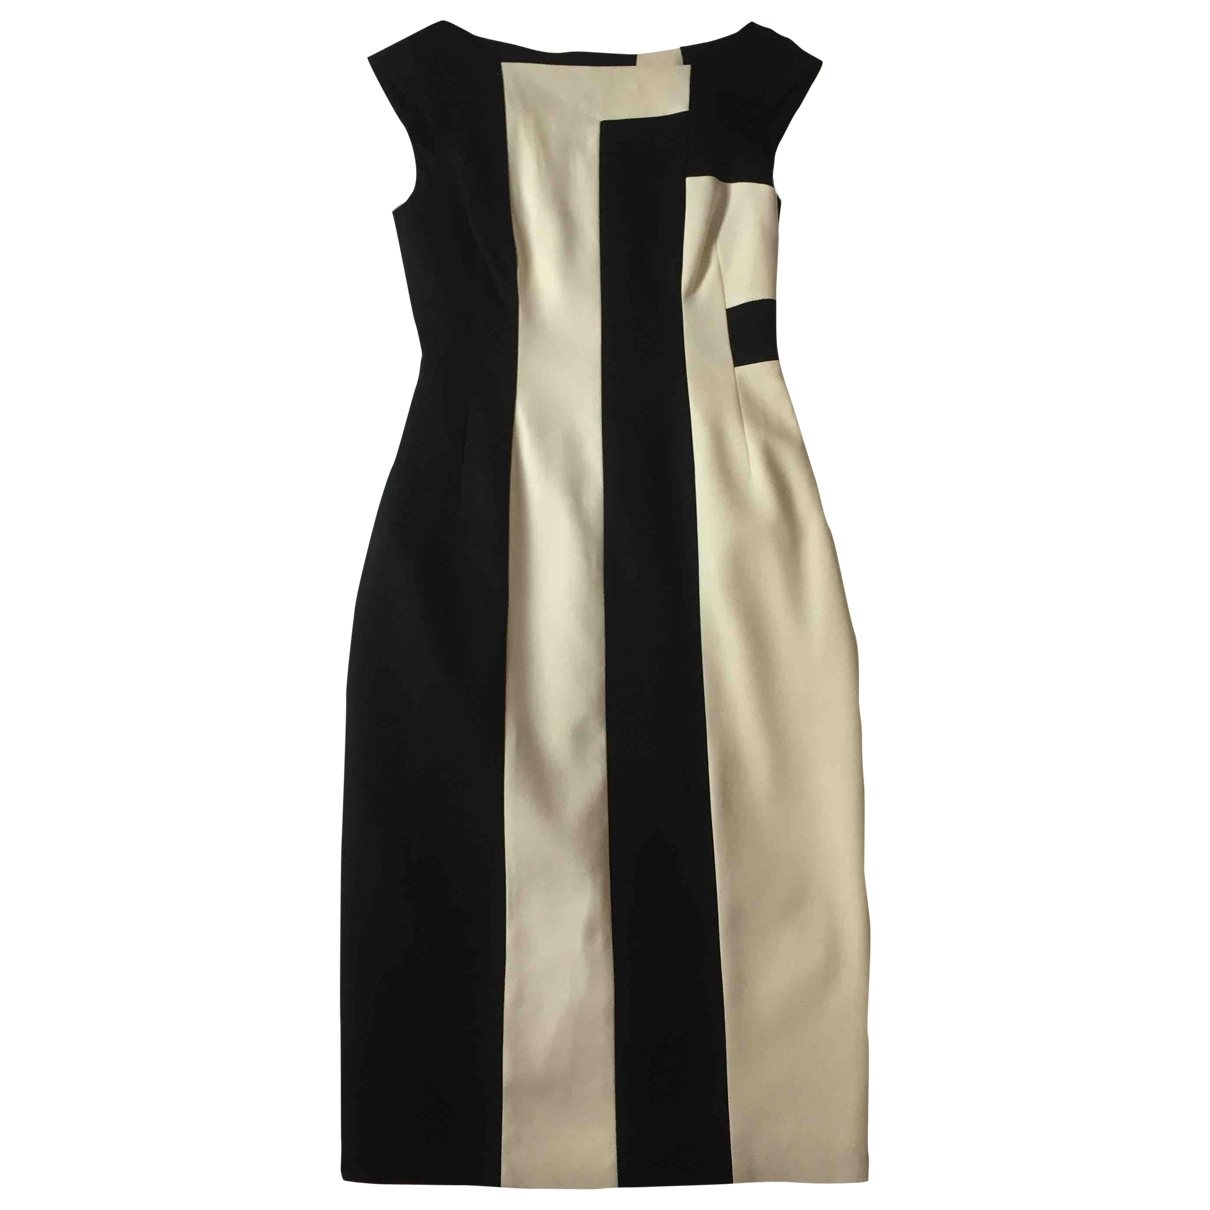 Karen Millen \N Black dress for Women 10 UK